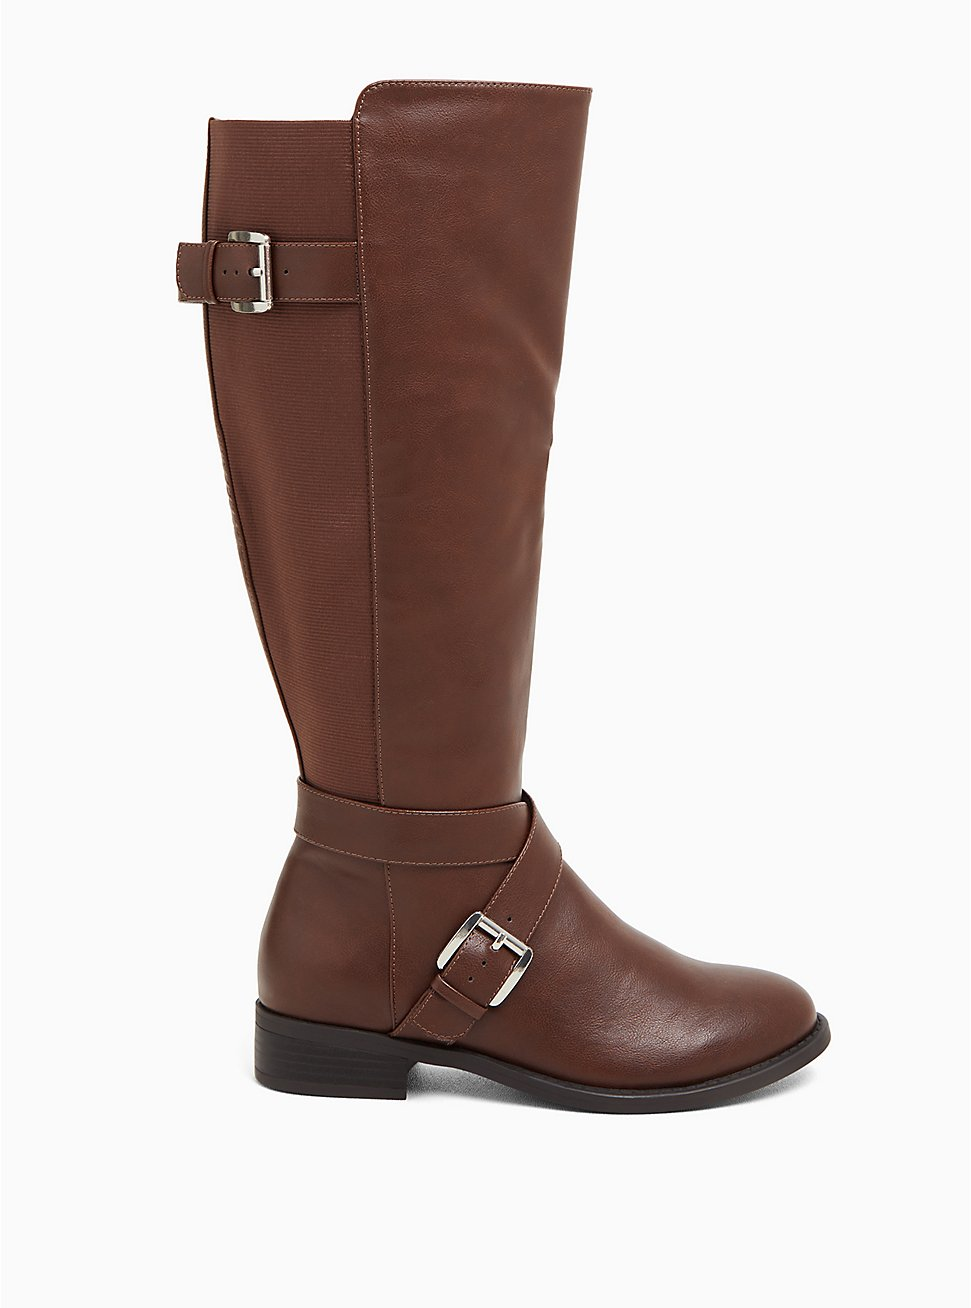 Plus Size Brooke - Chestnut Faux Leather Buckle Knee-High Boot (WW & Wide to Extra Wide Calf), BROWN, hi-res